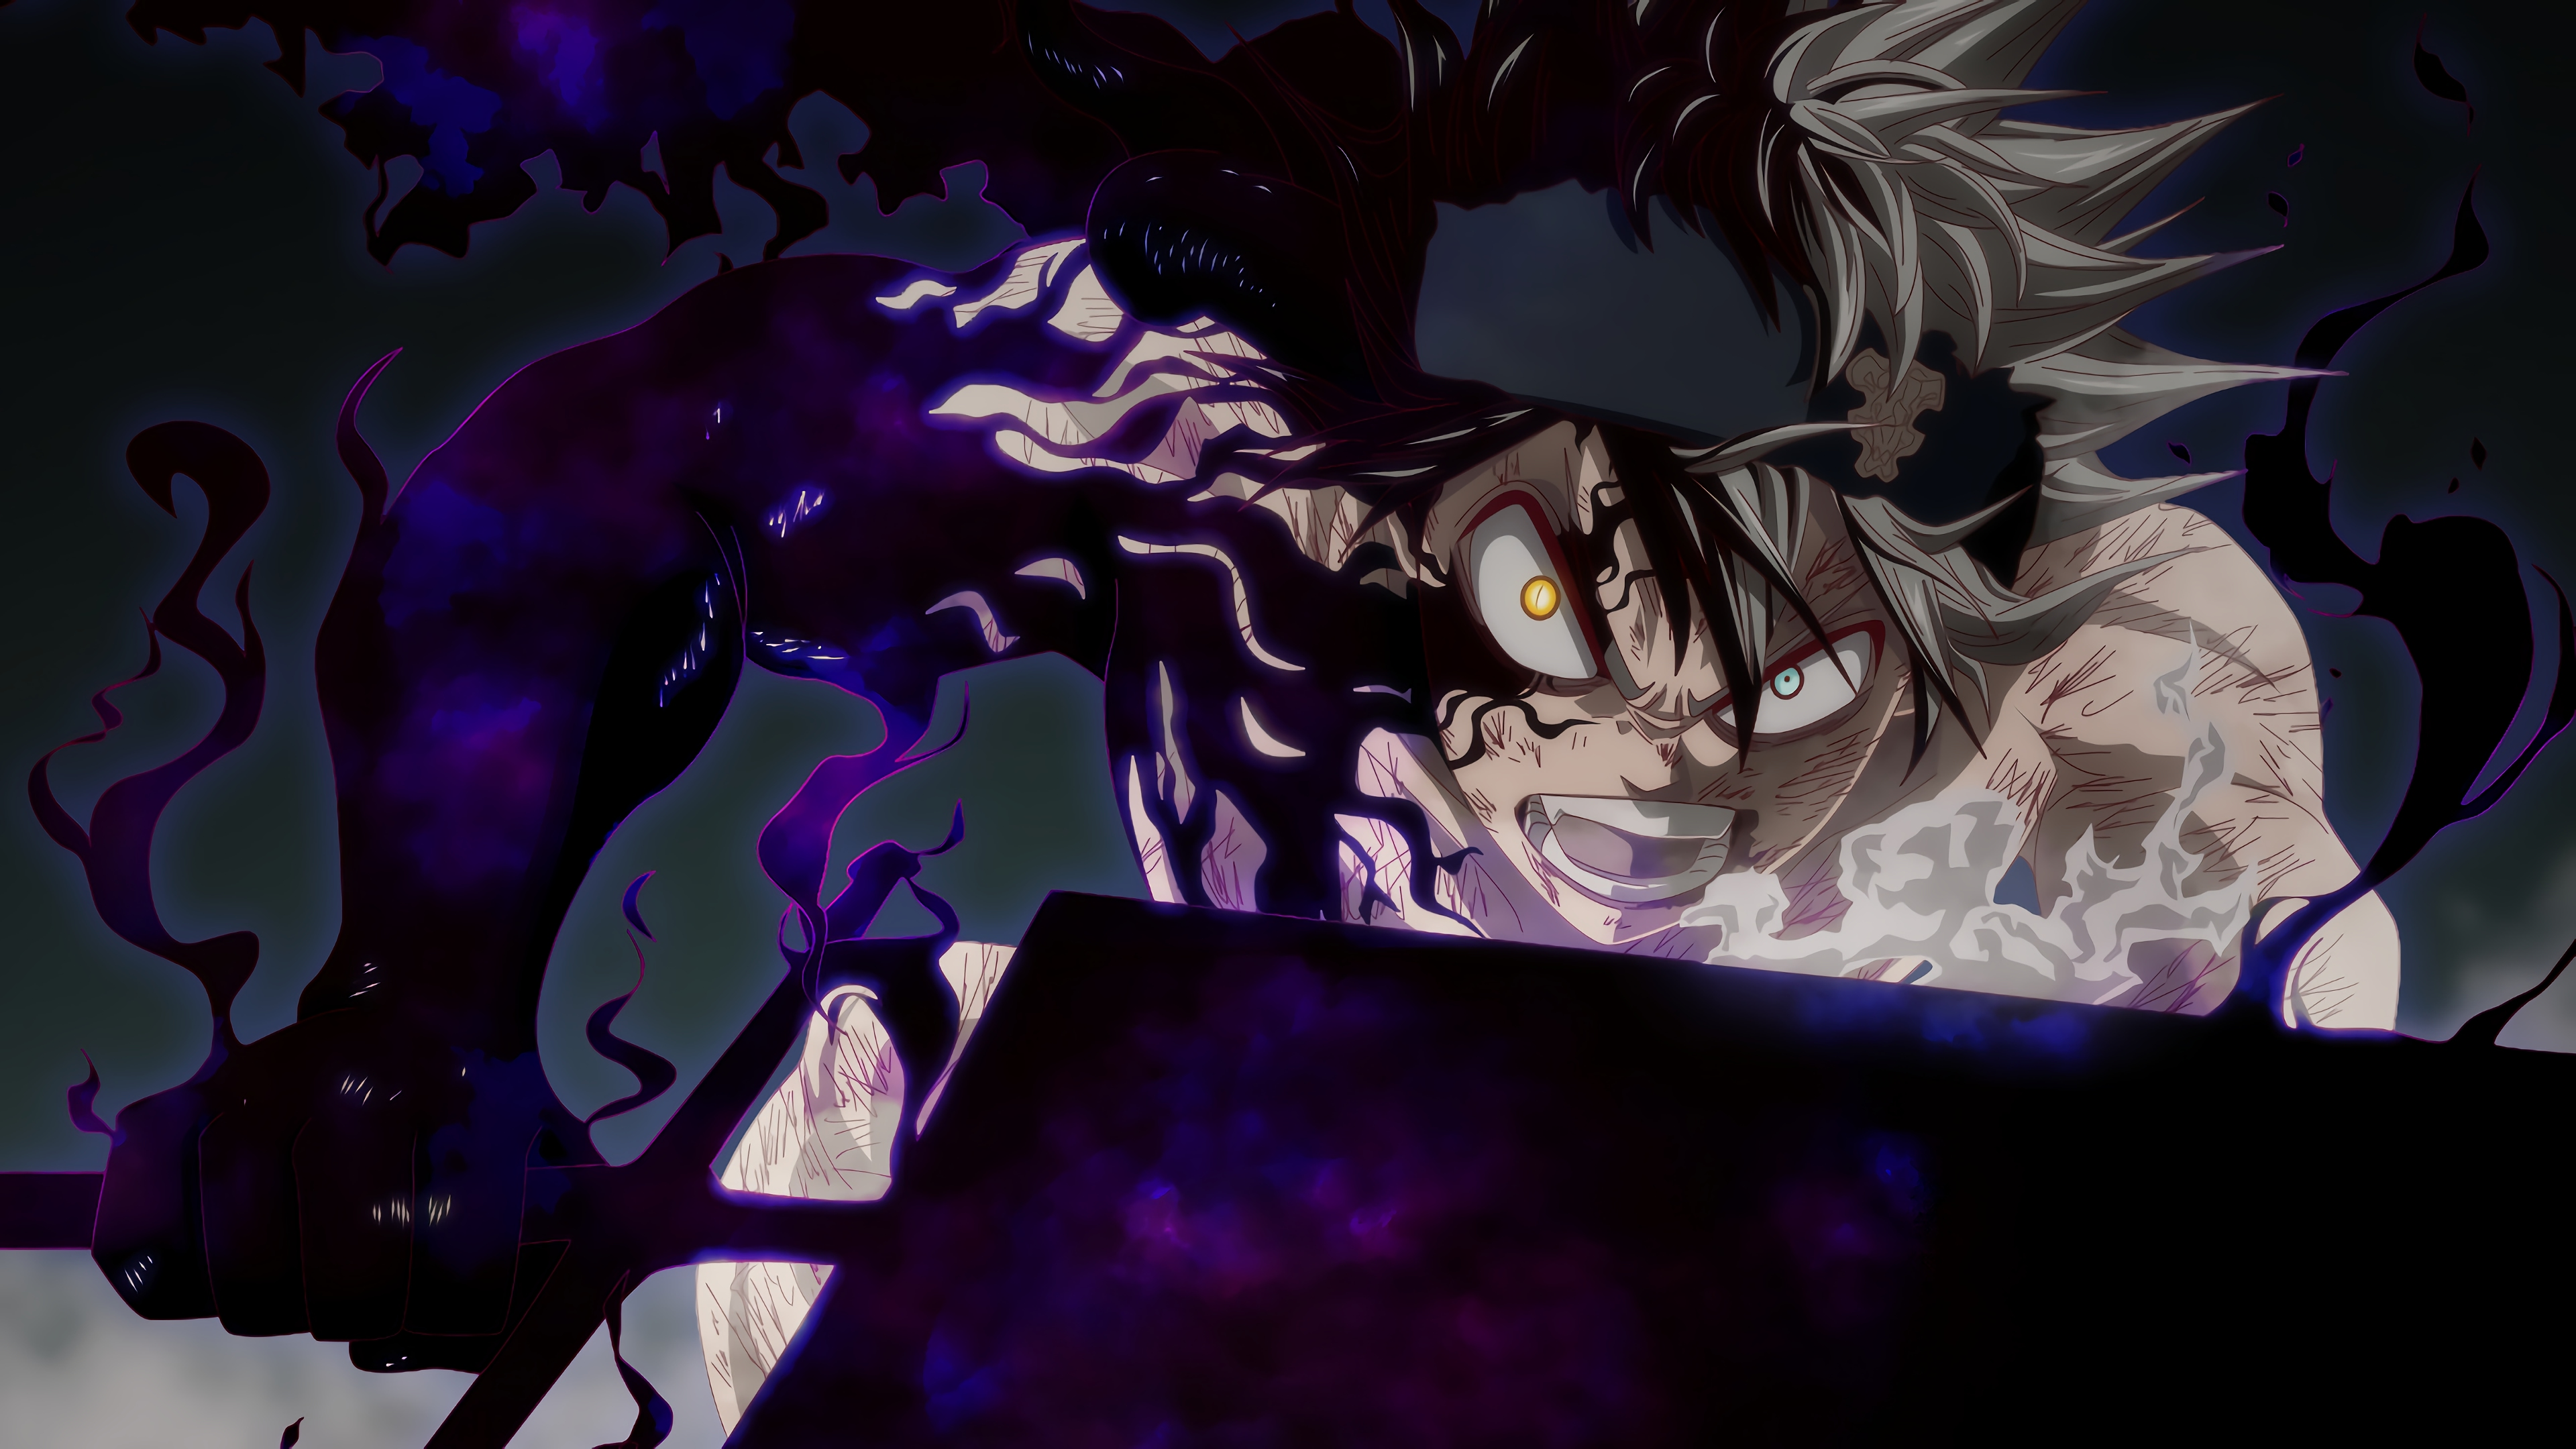 Asta Demonic Form 4k Ultra Hd Wallpaper Background Image 3840x2160 Id 983332 Wallpaper Abyss The reckless magic fight ch.142 : asta demonic form 4k ultra hd wallpaper